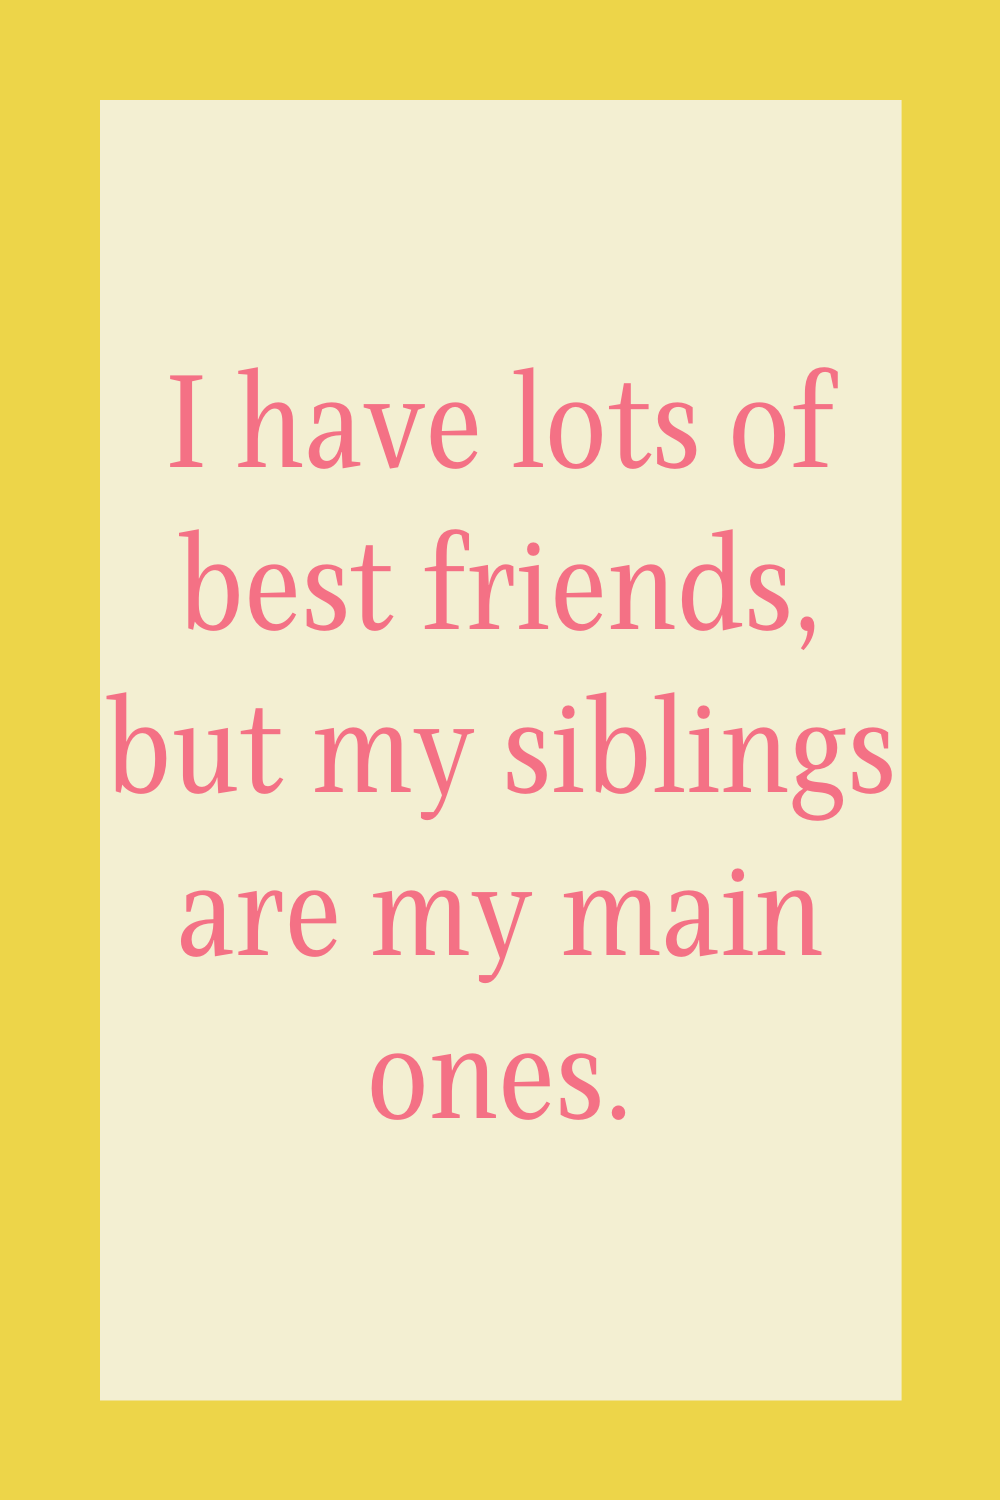 Siblings Day Quotes For Instagram